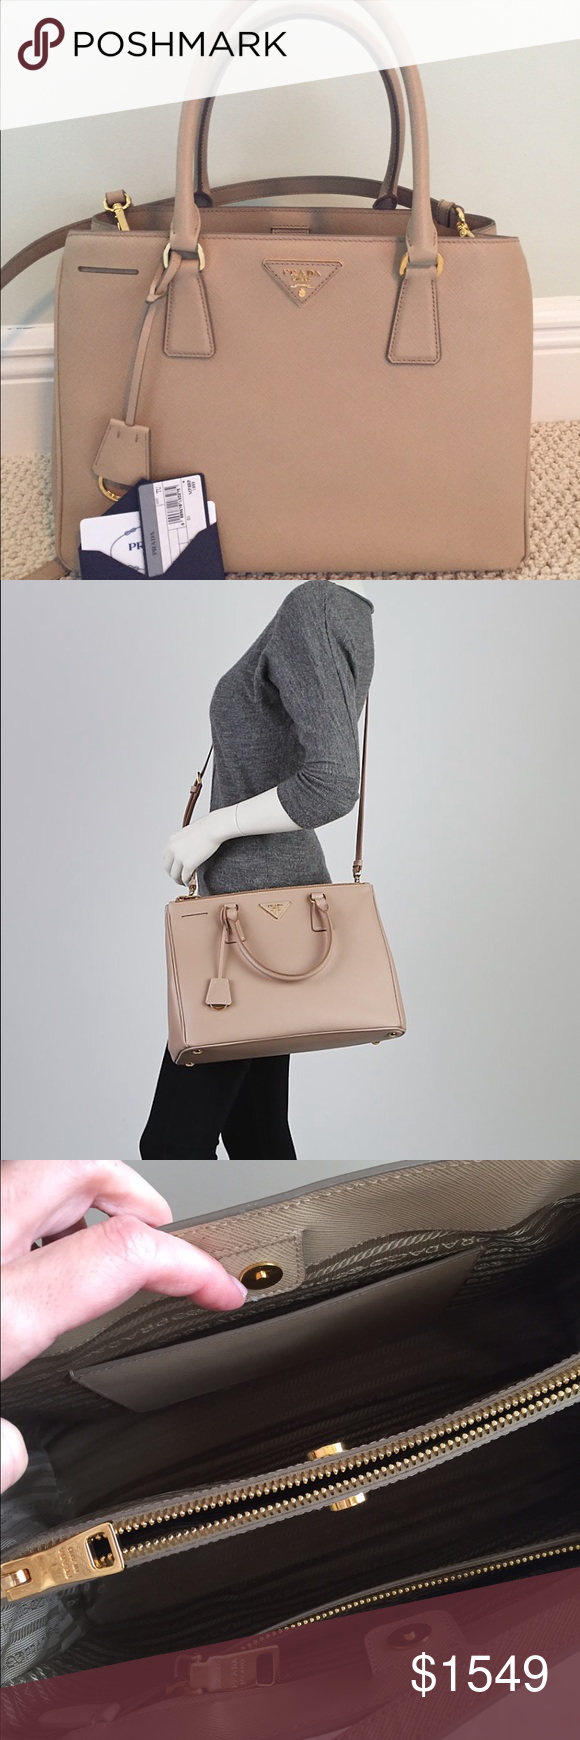 7cad2226d59f 5c2a1 0dc80; good prada saffiano lux medium tote sabbia prada saffiano lux  medium tote in sabbia color.